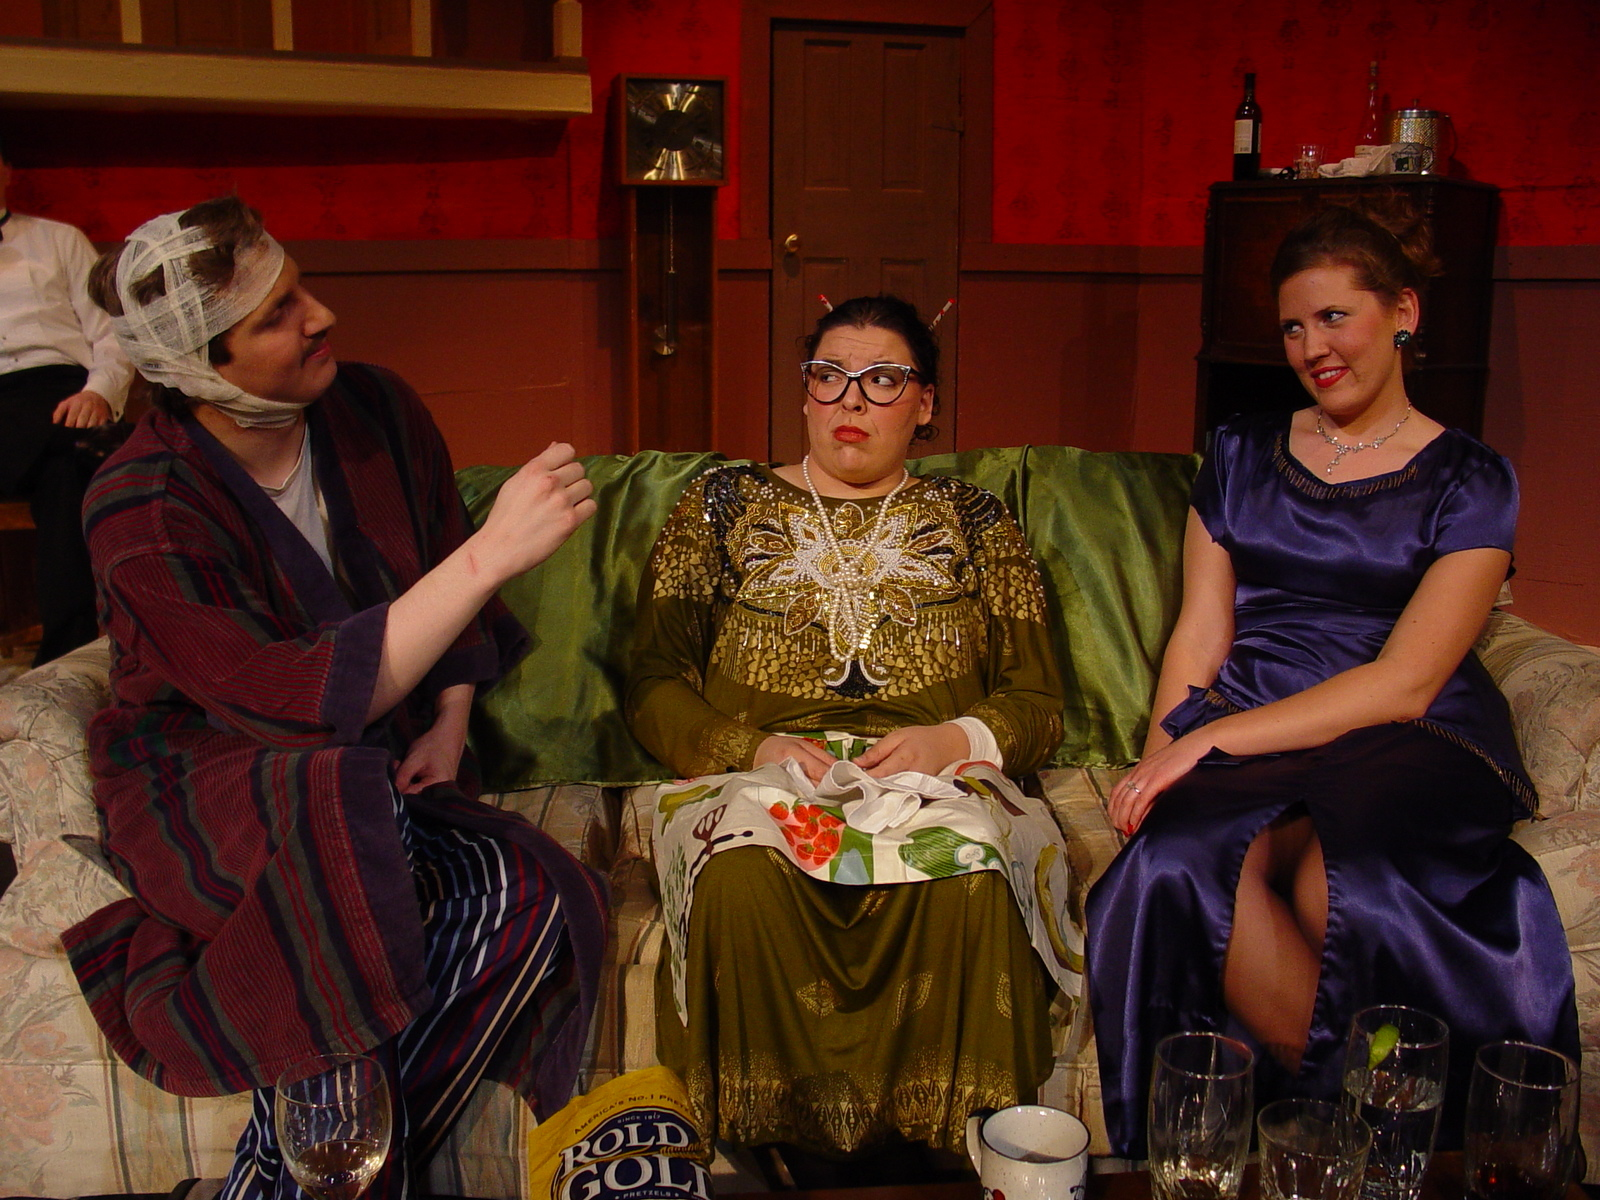 Sterling College Photo - The Sterling College Theatre Department puts on 6-8 shows a year, including a full-length musical, classical piece, student directed shows and one act plays. This picture is from the 2008 production of Rumors, by Neil Simon.